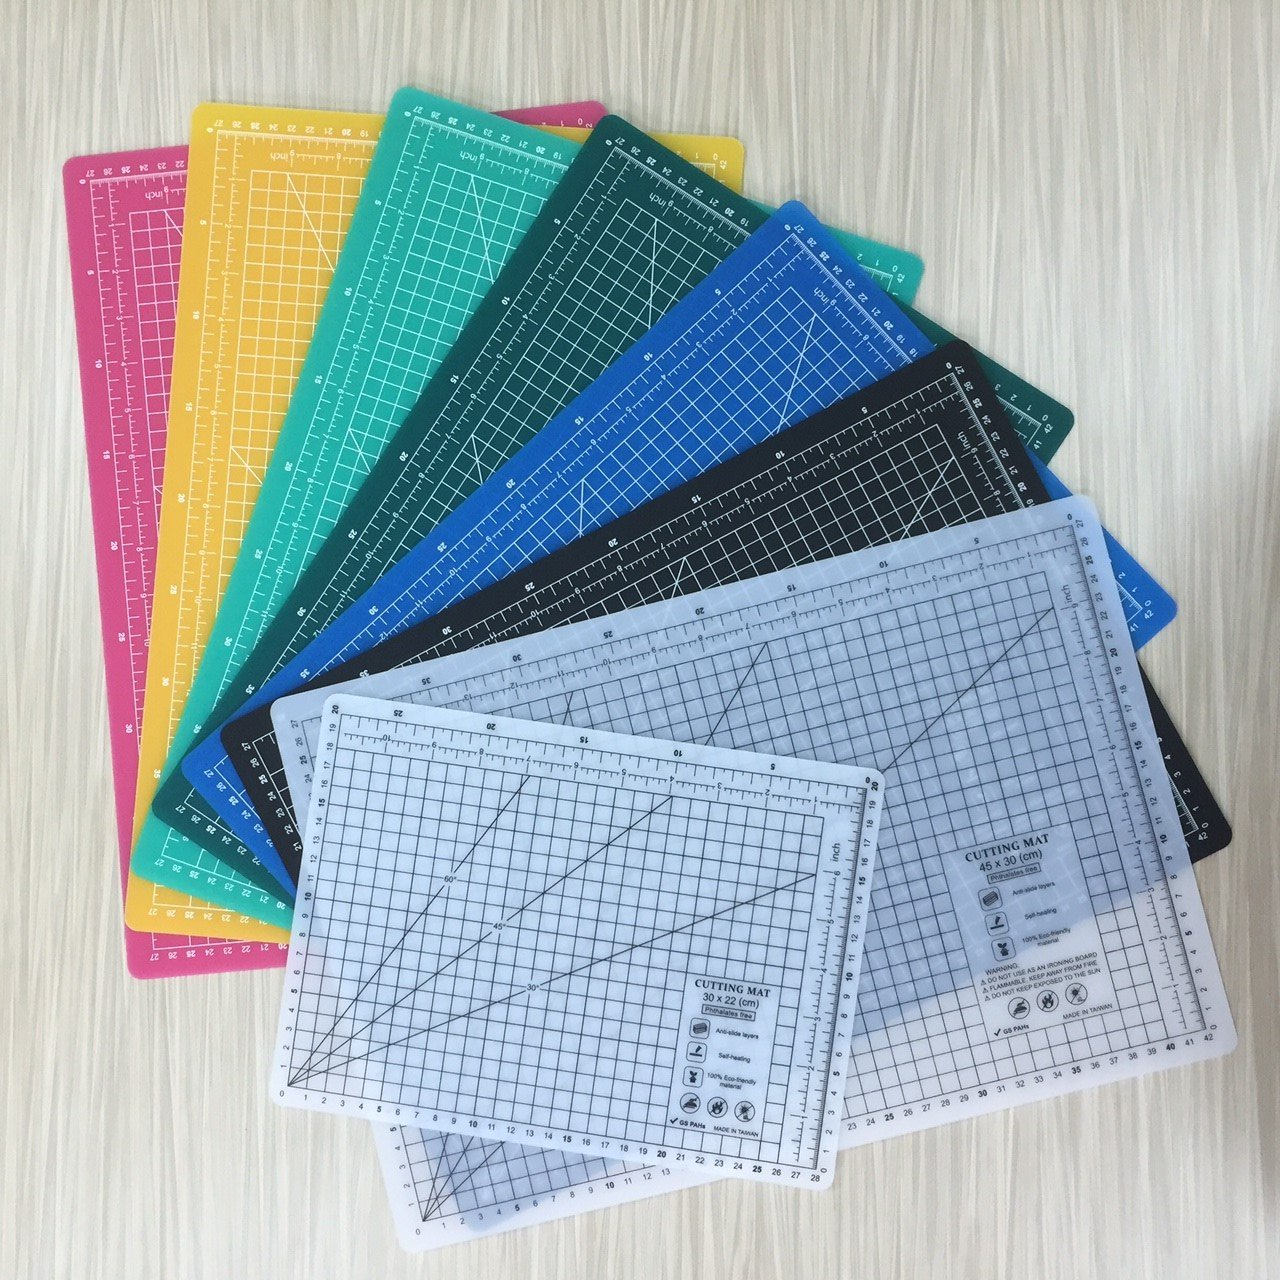 A4 (12L x 9W Inch) (300 x 220 mm) Self Healing Eco Friendly Colorful Cutting Mat (Yellow) Yuen Young Plastics Co. Ltd A25A4